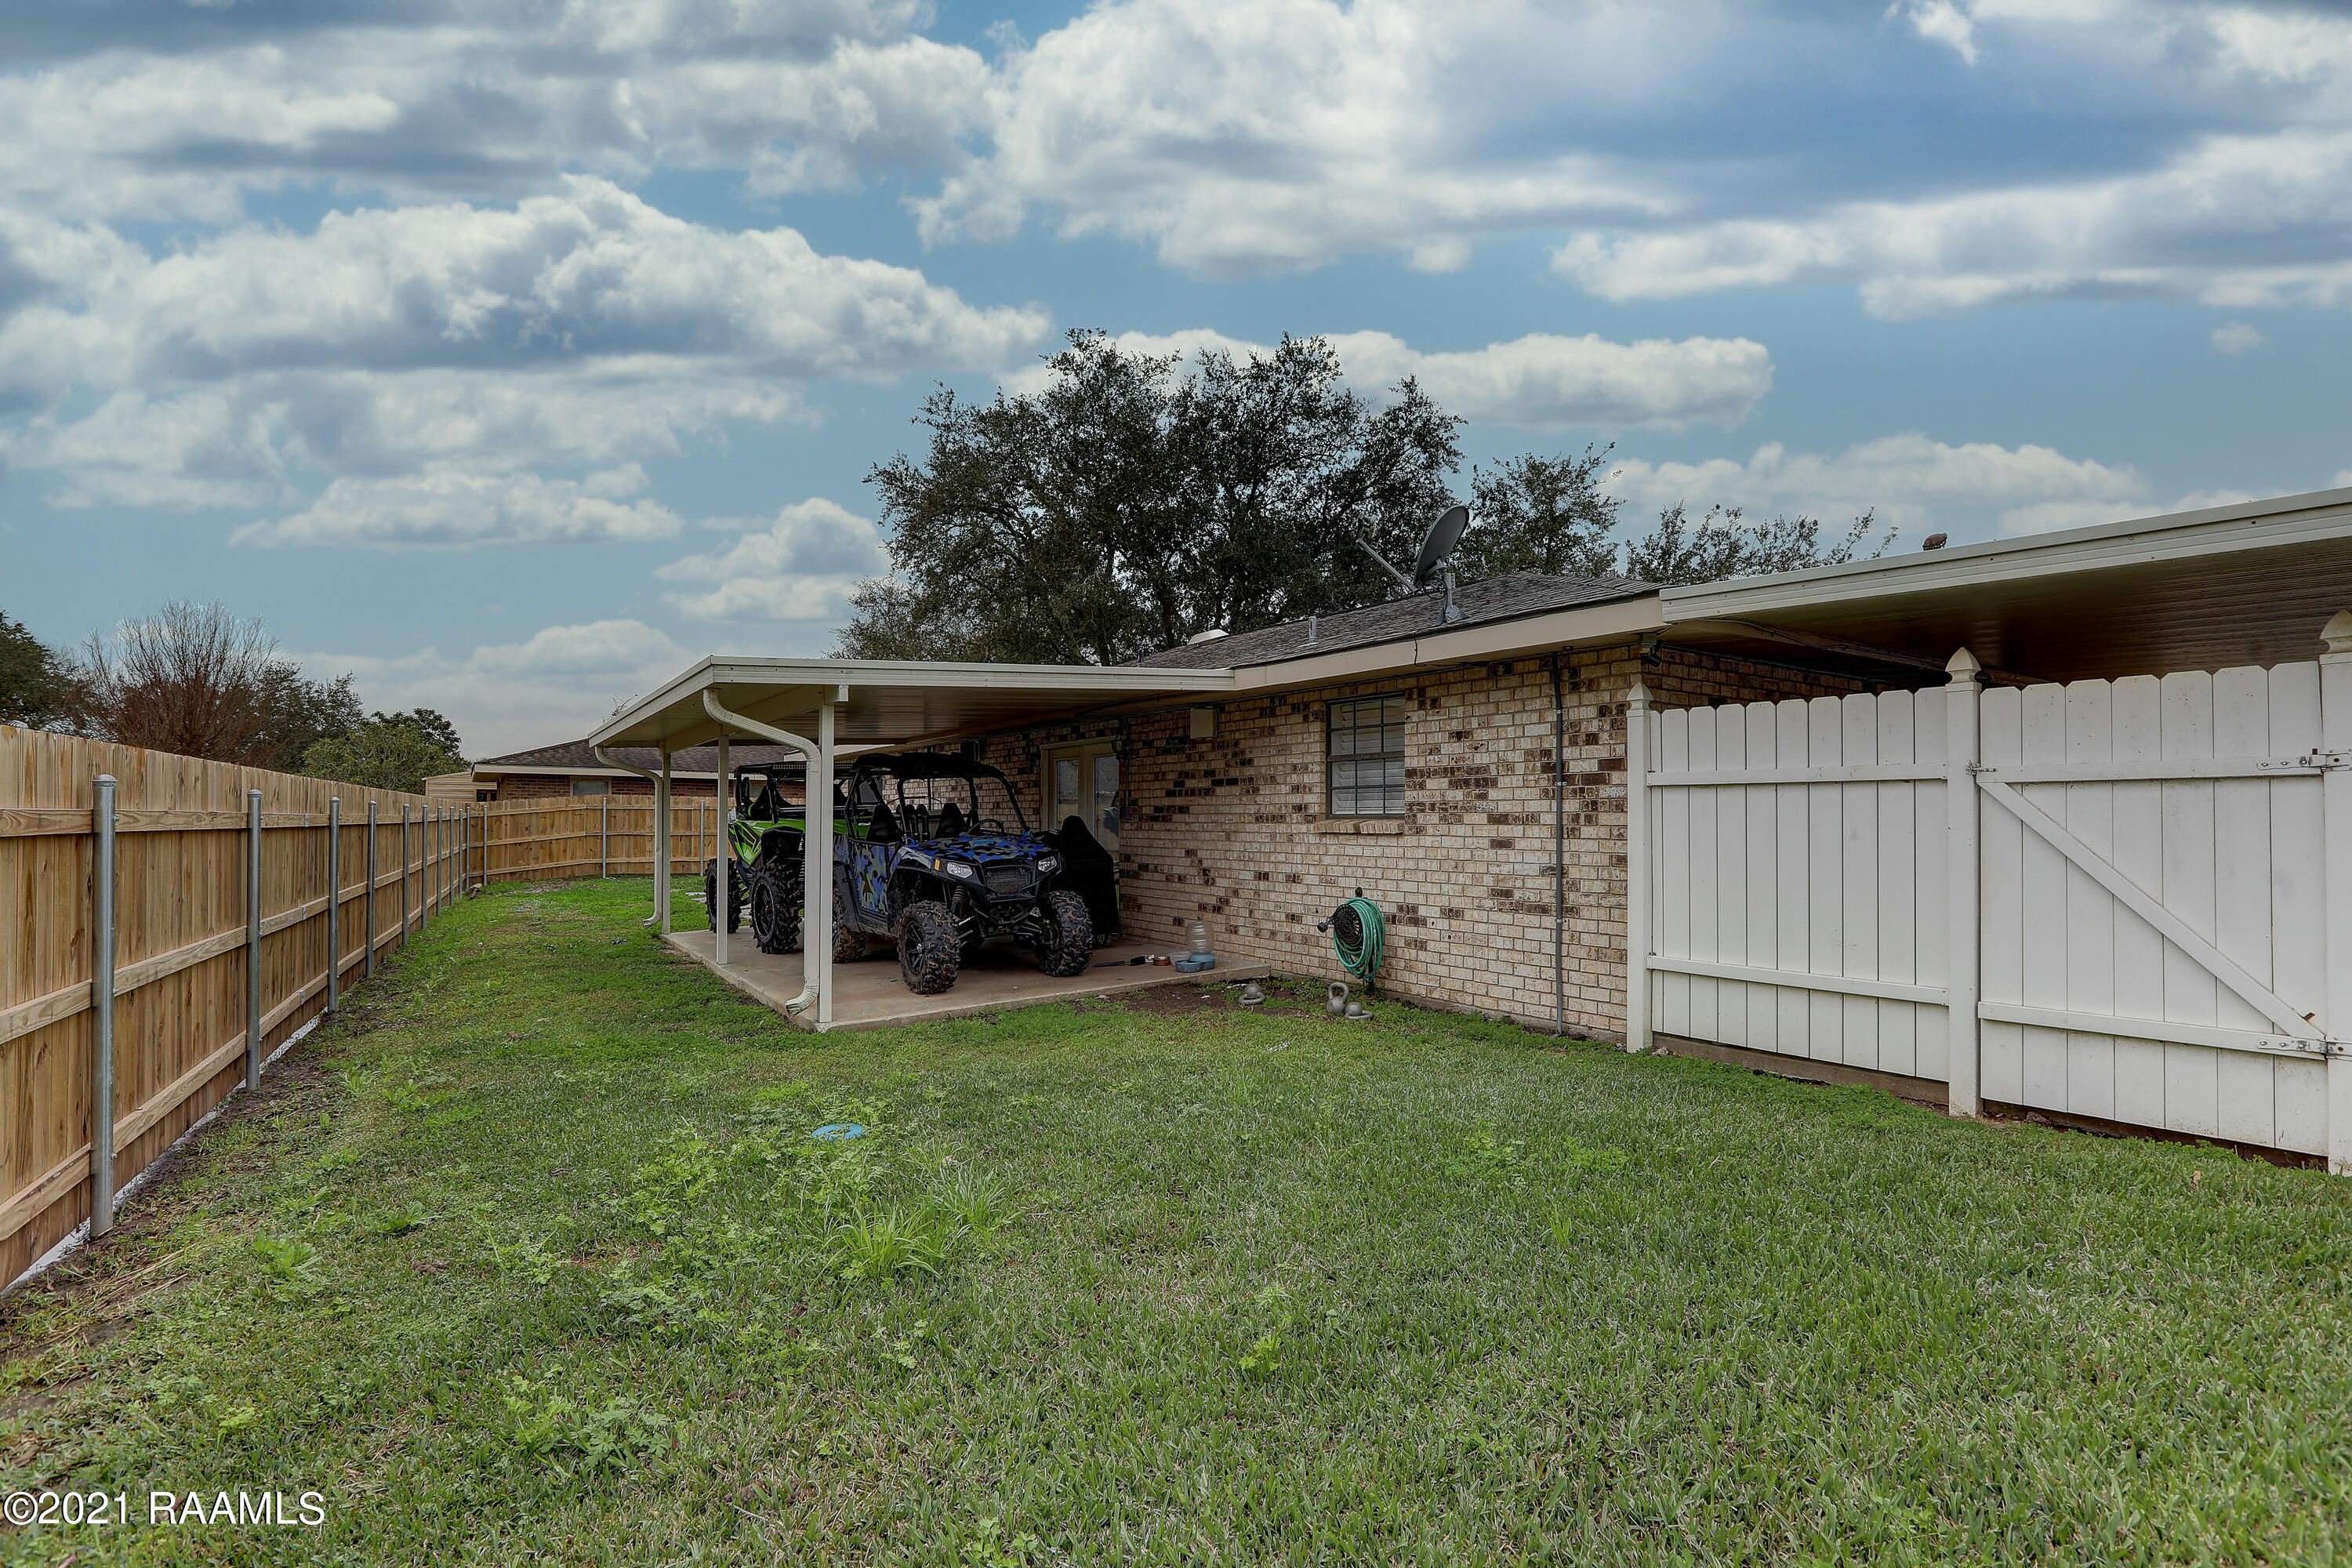 131 Becky Drive, Patterson, LA 70392 Photo #20